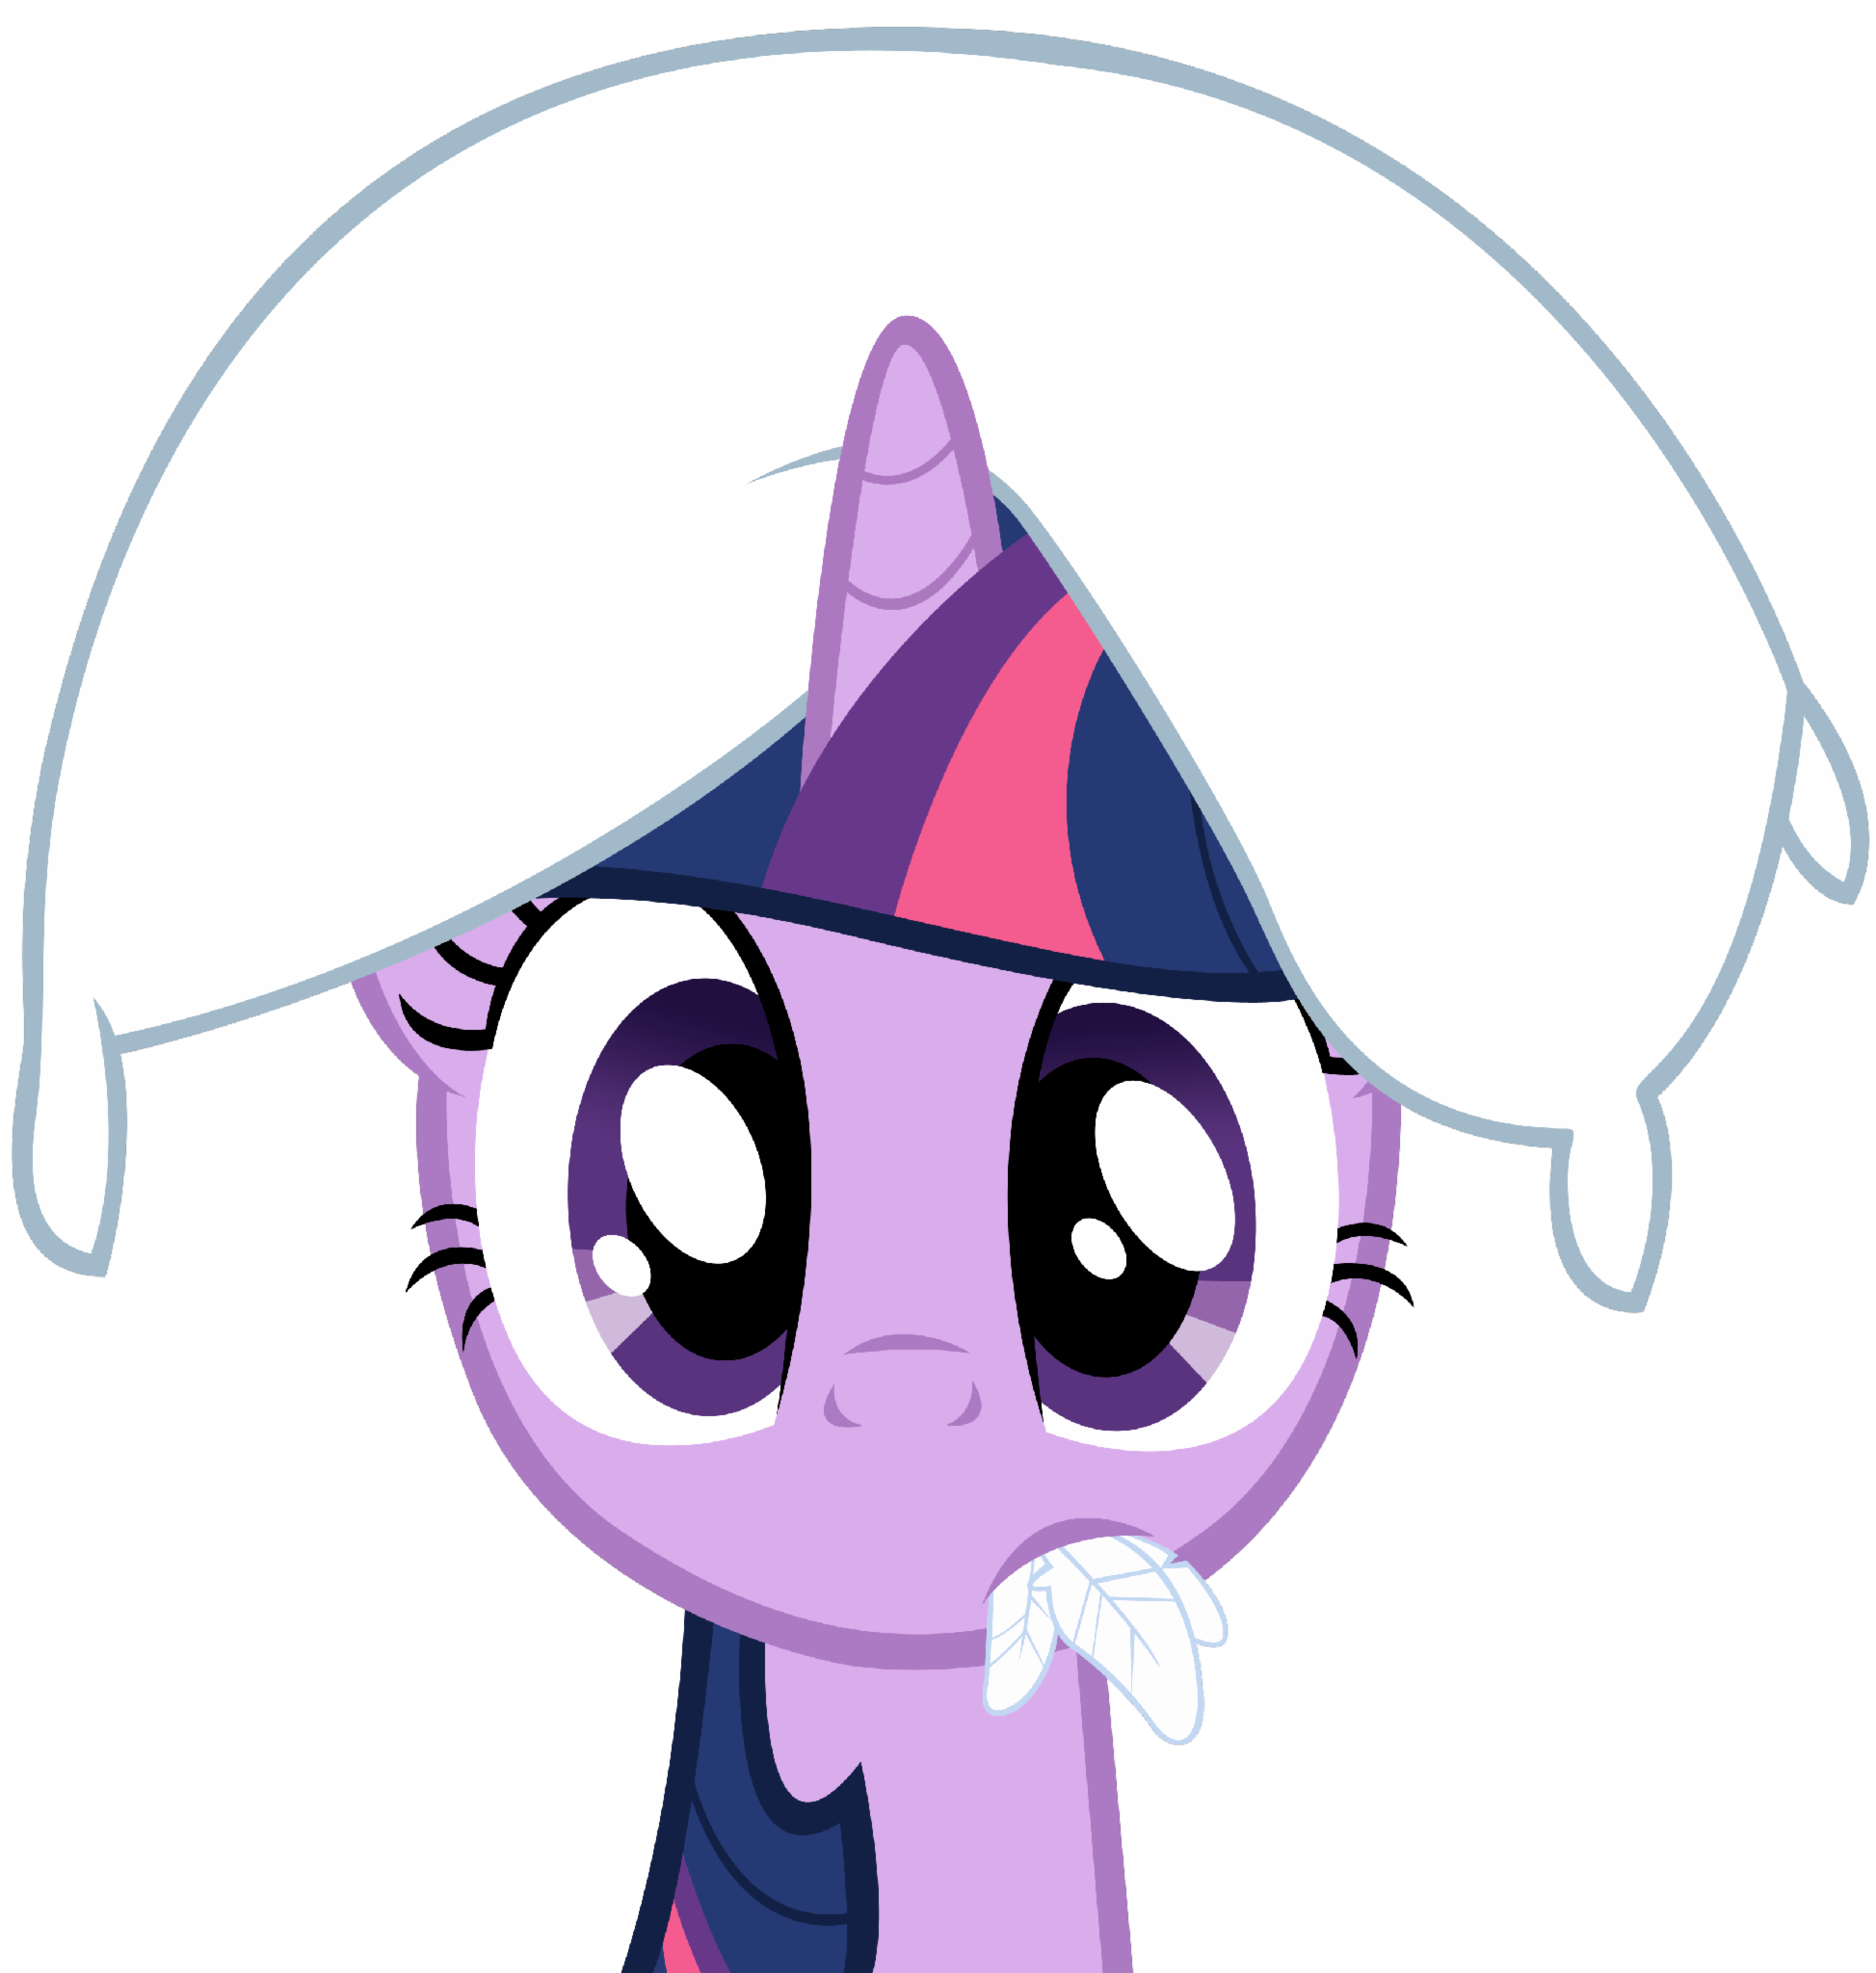 What is Twilight Sparkle's cutie mark?